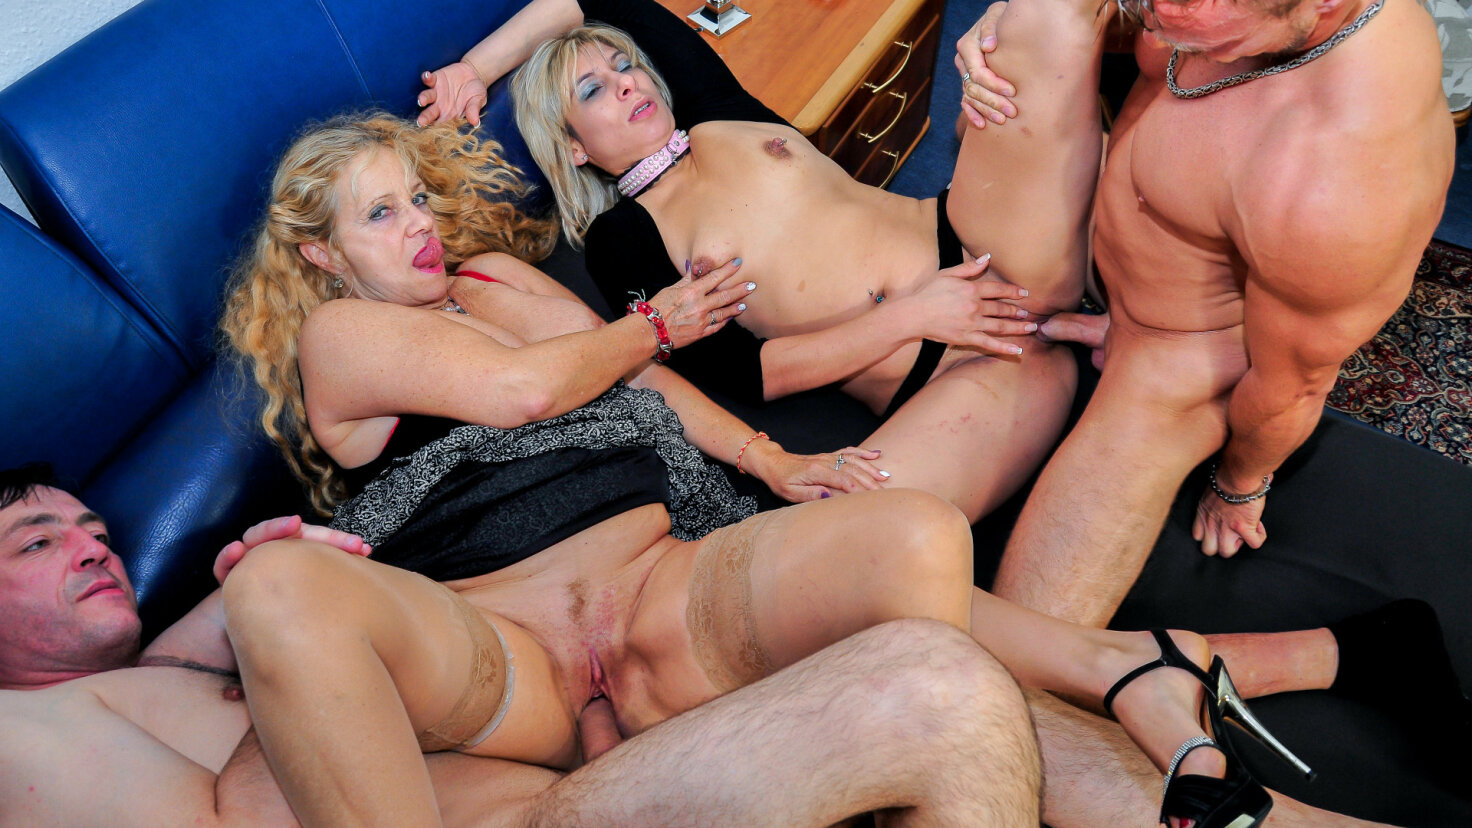 Wild German foursome with naughty mature blonde swingers